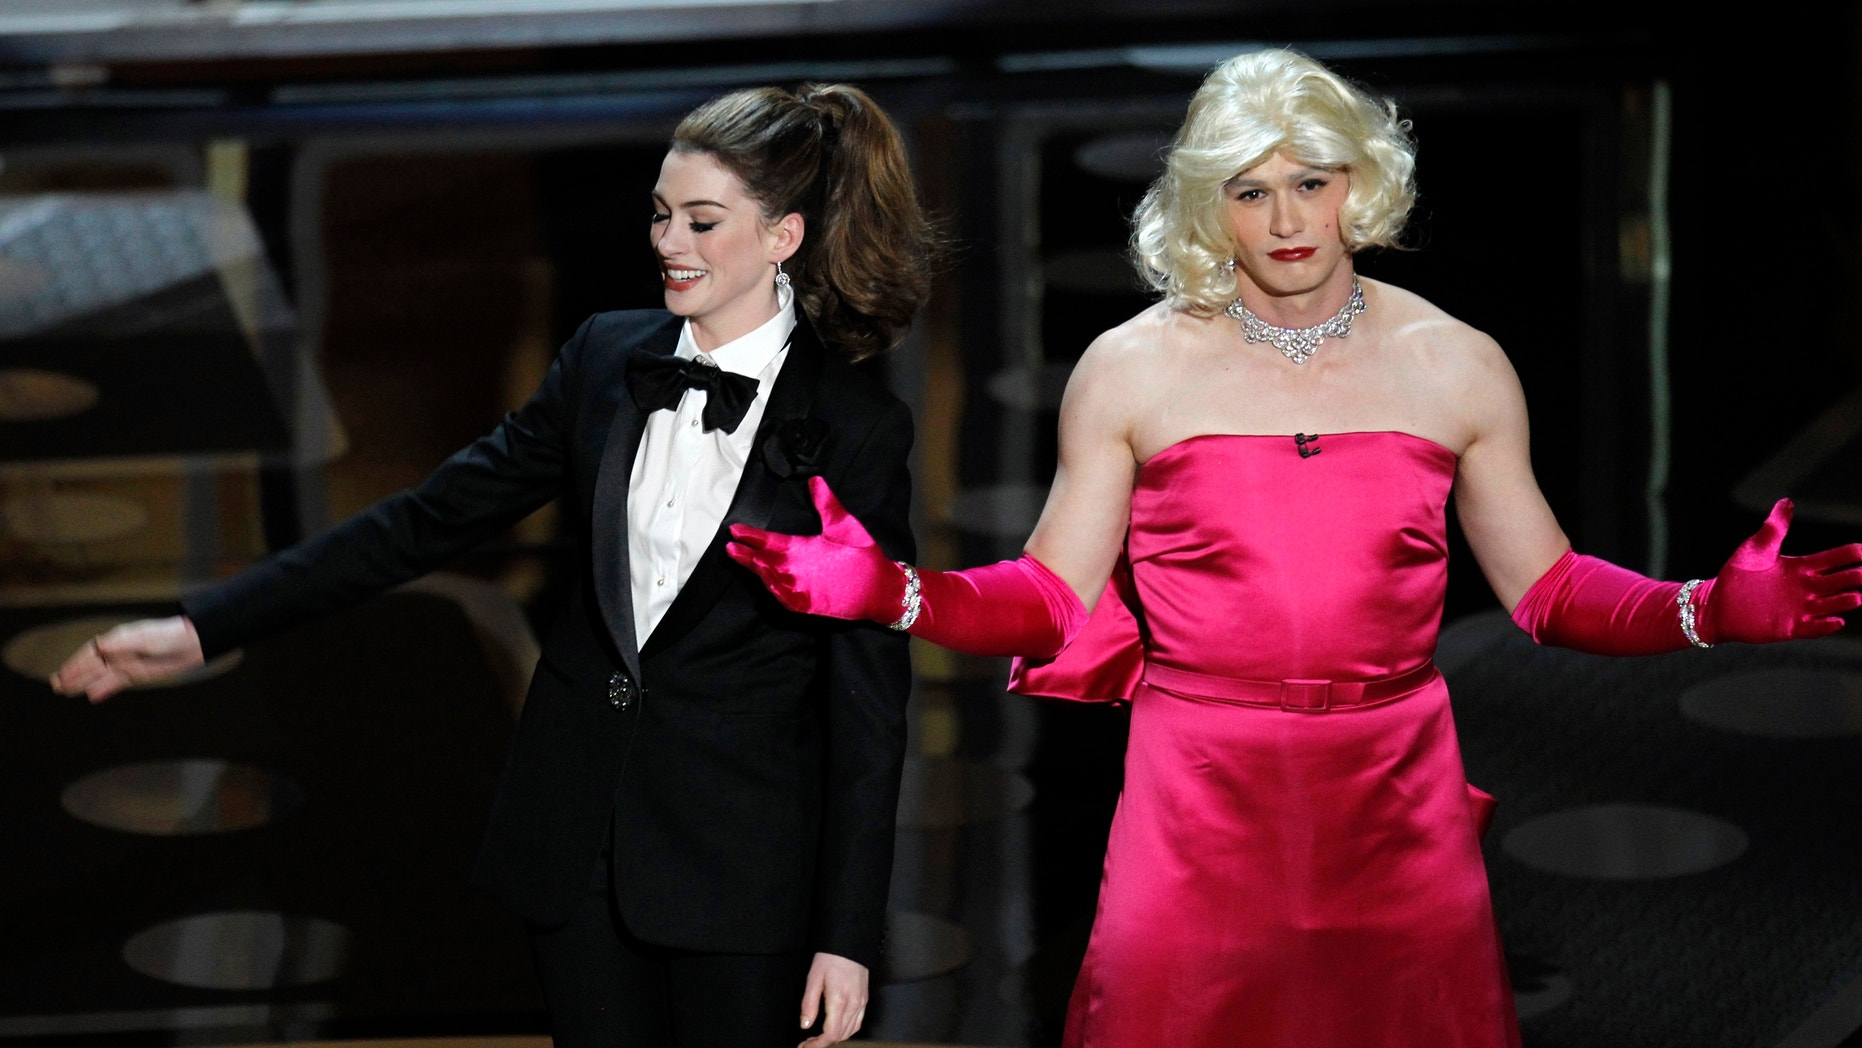 James Franco dresses up as Marilyn Monroe while hosting the 2011 Academy Awards with Anne Hathaway.